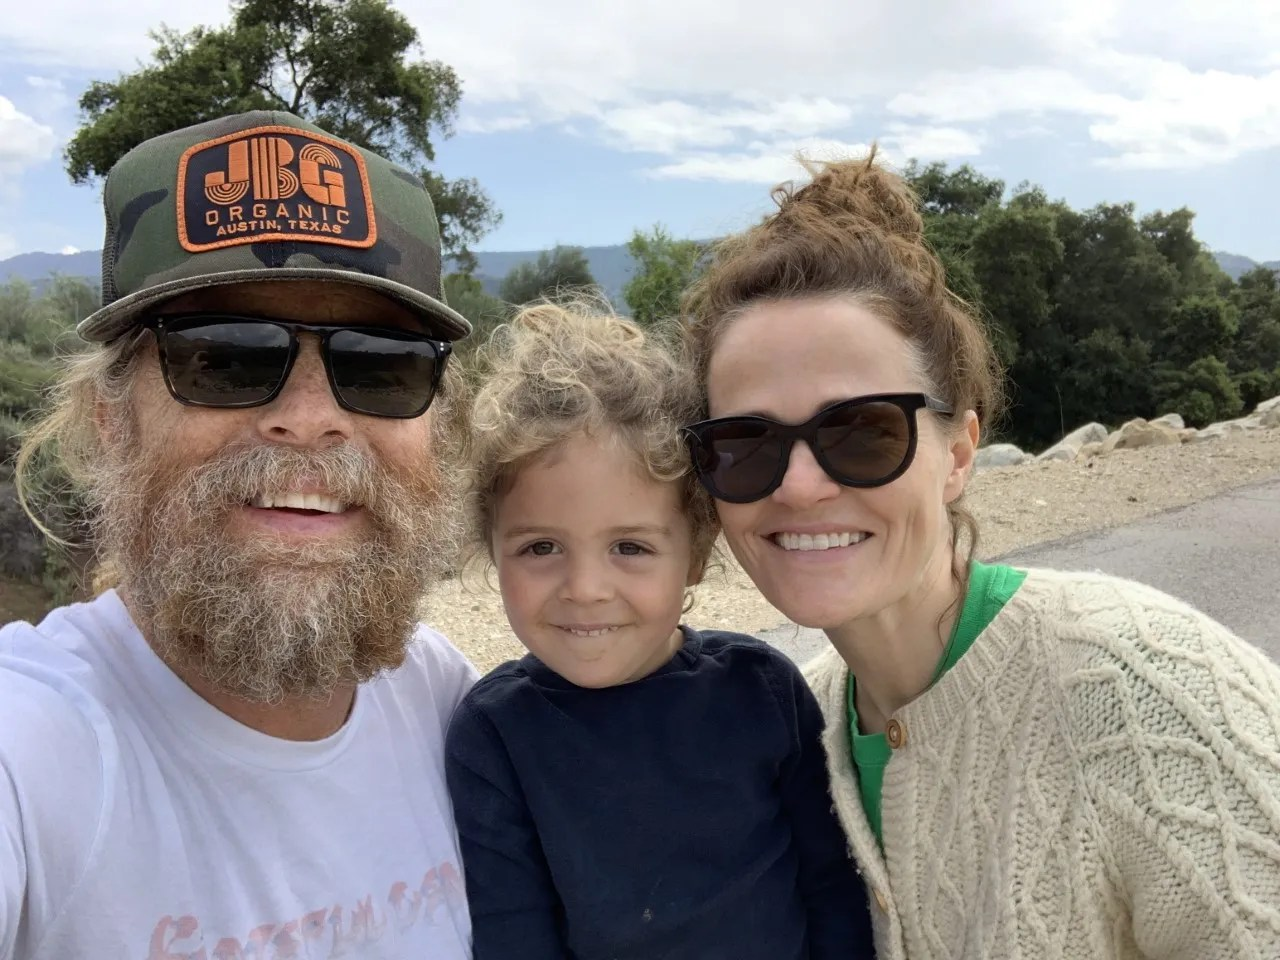 Gerry Gilhool, left, with son Quinn and partner Ali Johnes in Ojai in March 2020.